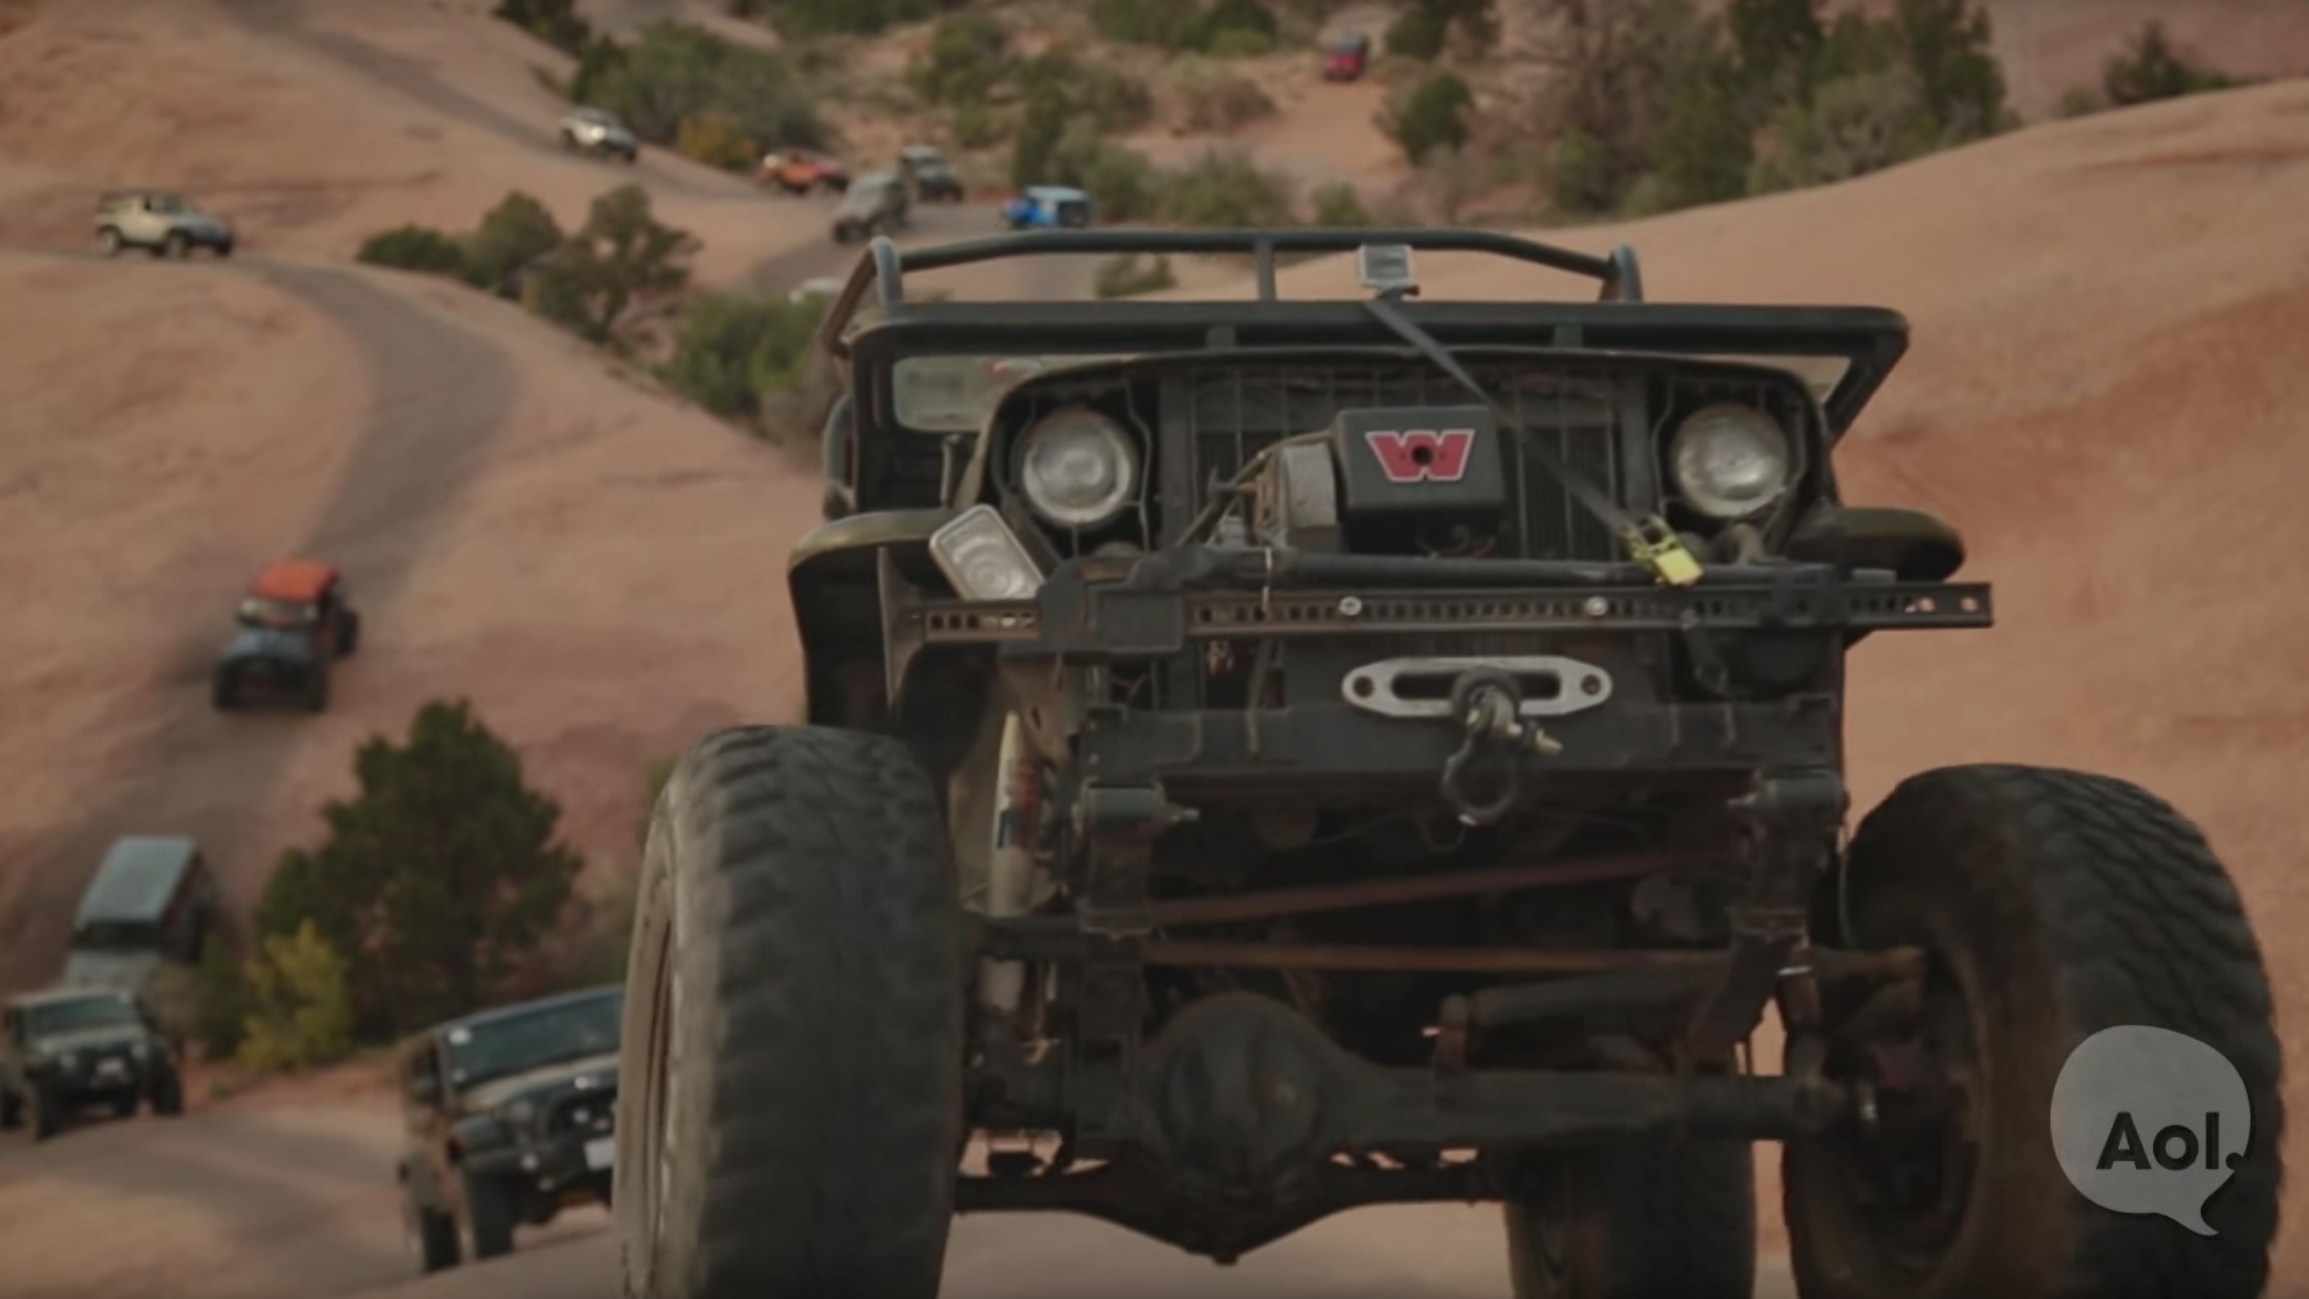 Ride along with a Jeep Wrangler club in Moab